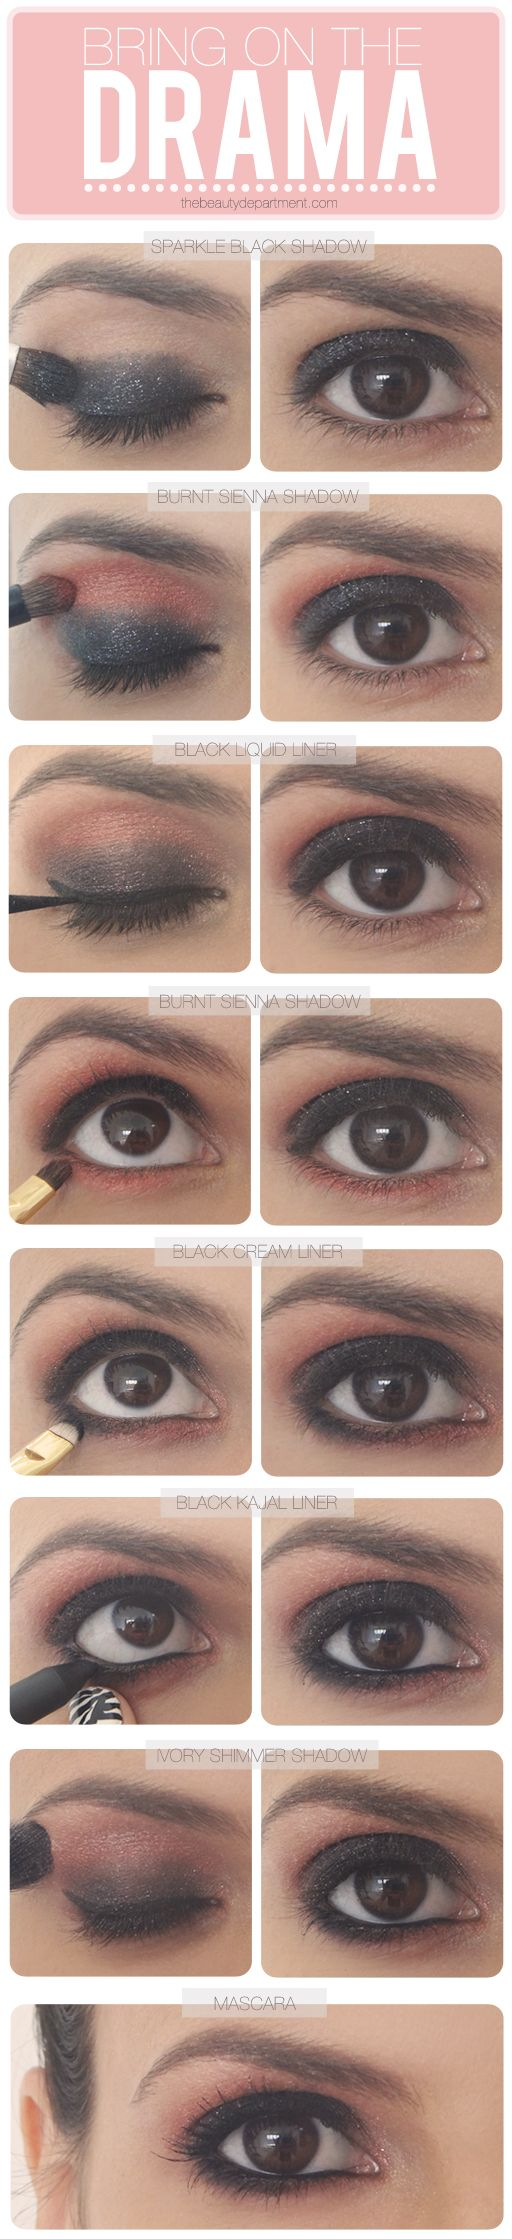 Drama eyes / brown eyes makeup